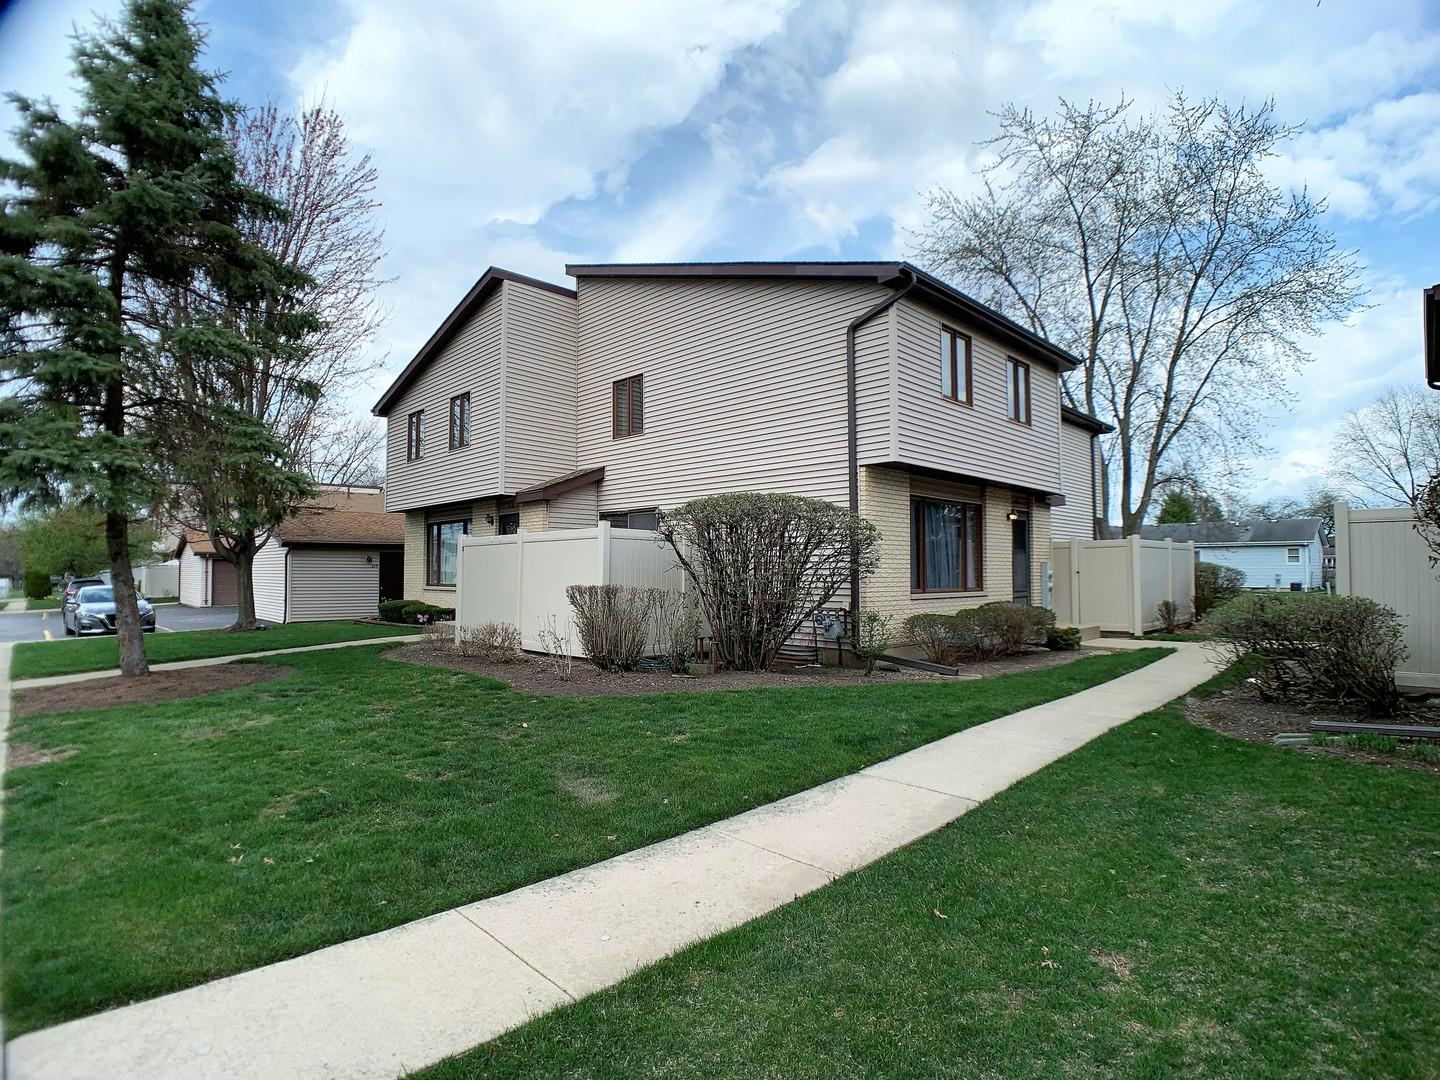 244 E Woodlawn Road, New Lenox, IL 60451 - #: 11054575